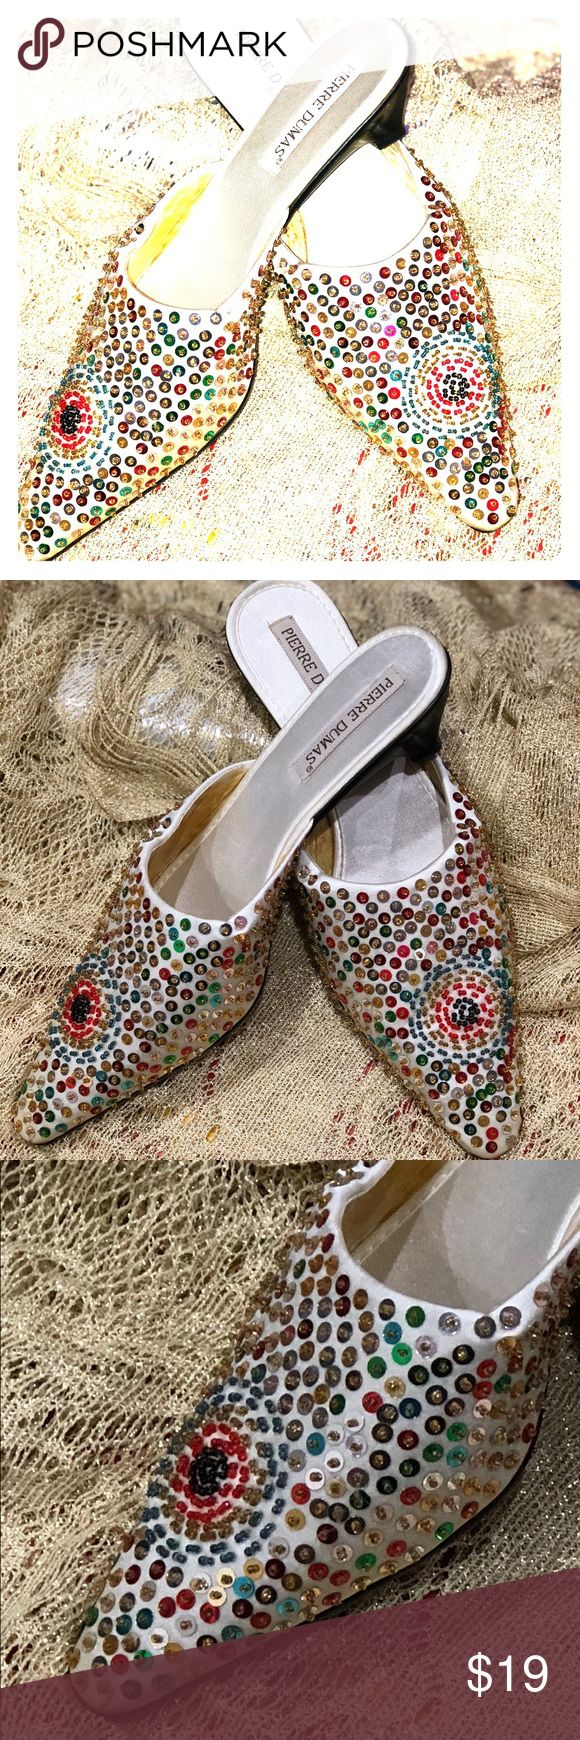 Sequined Shoes Pierre Dumas Size 8 NWT Pierre Dumas Vintage Sequin Shoes. Multi-color. Never been worn. The sequin has discolored the inside of the shoes but they are mint on the outside and no pieces are missing. Size 8 Women's Pierre Dumas Shoes Heels